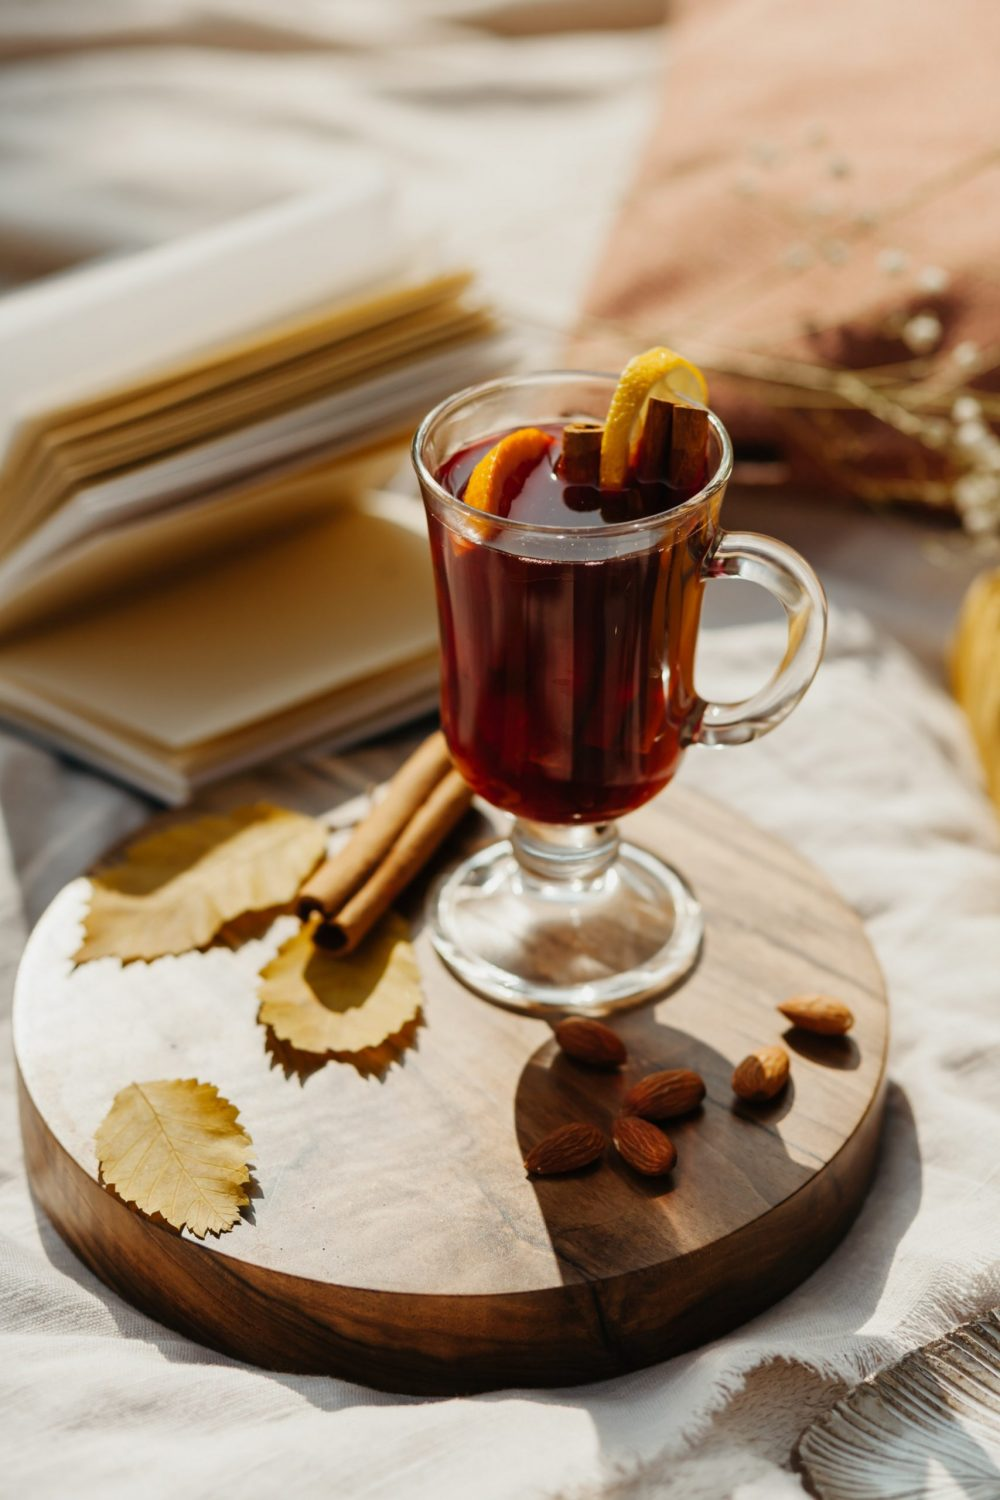 Sweet alcoholic drinks for beginners - Hot Toddy